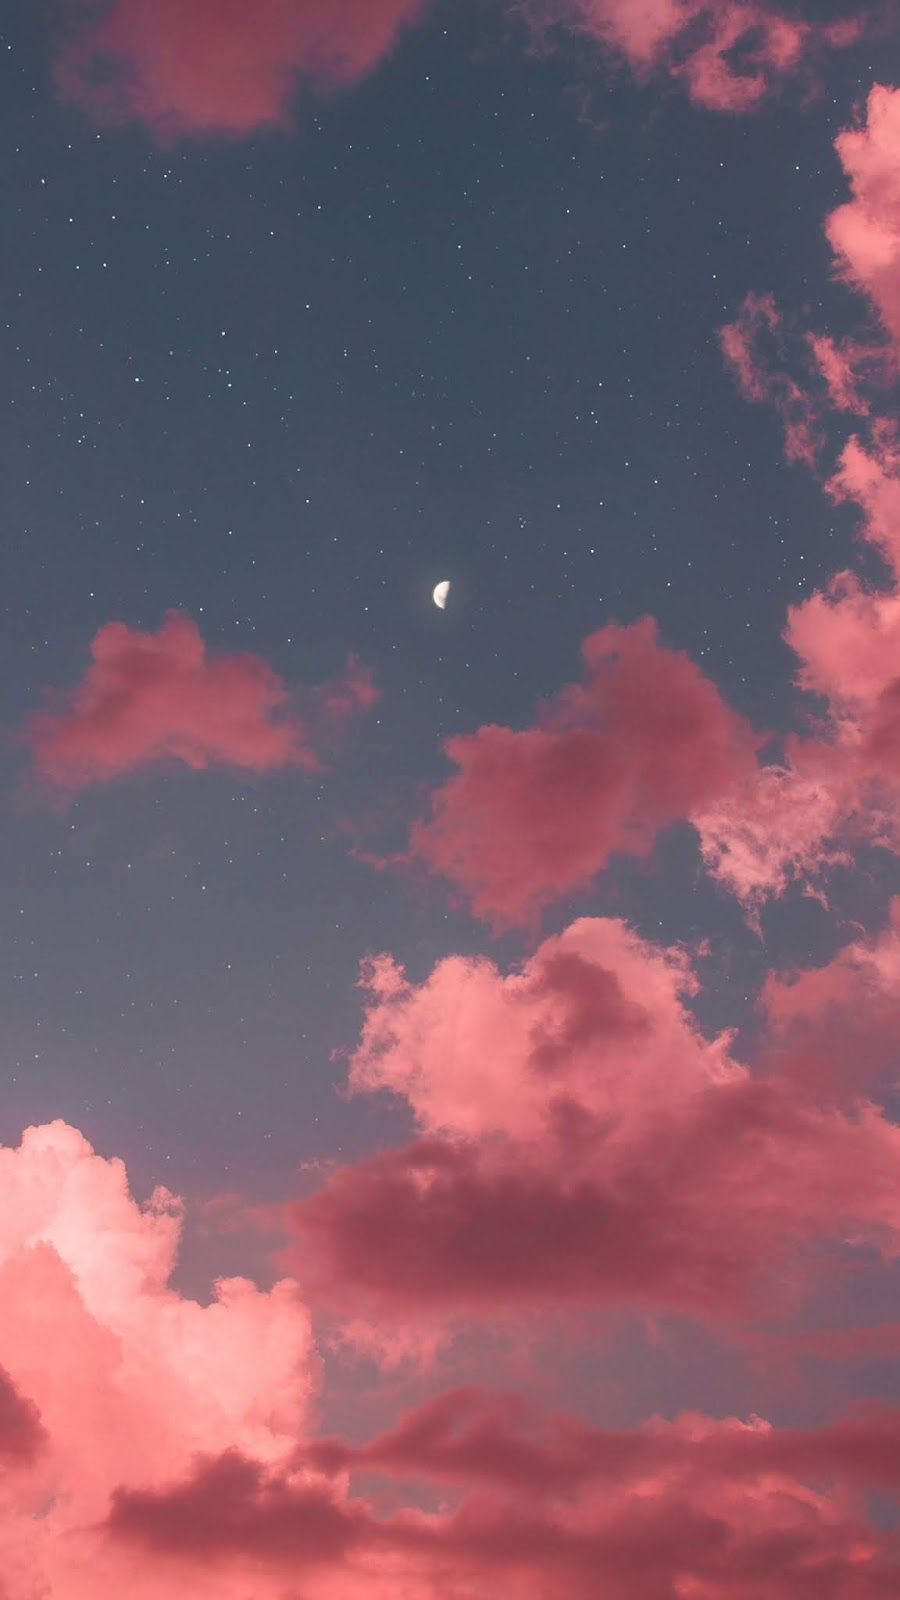 Half Moon In The Pink Sky With Images Pink Moon Wallpaper